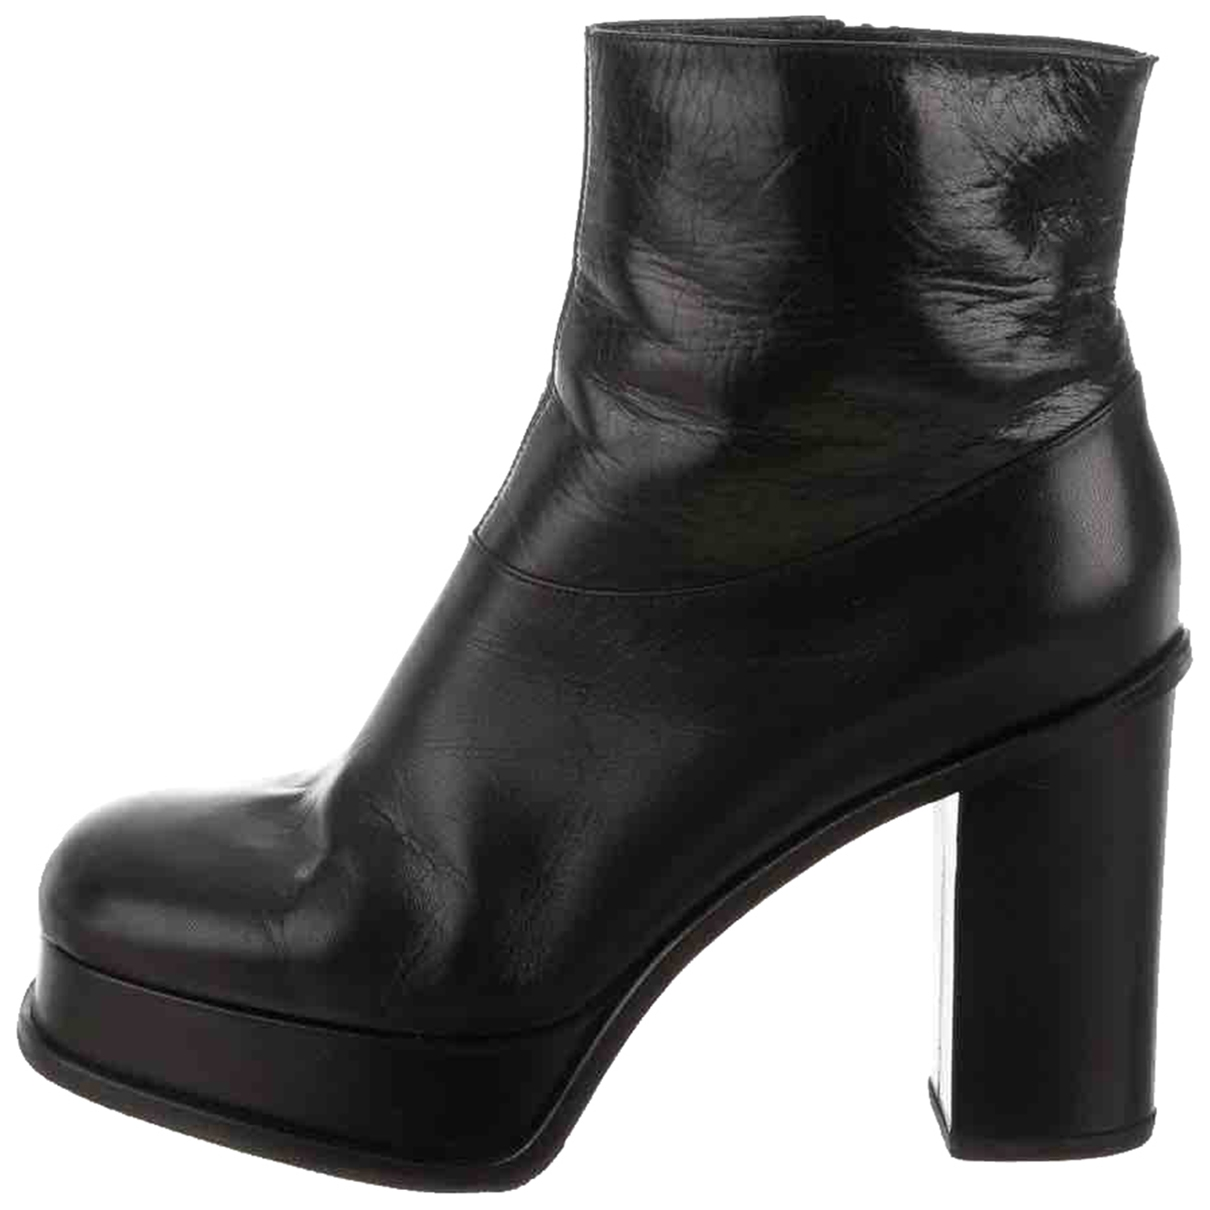 Celine \N Black Leather Ankle boots for Women 37.5 EU